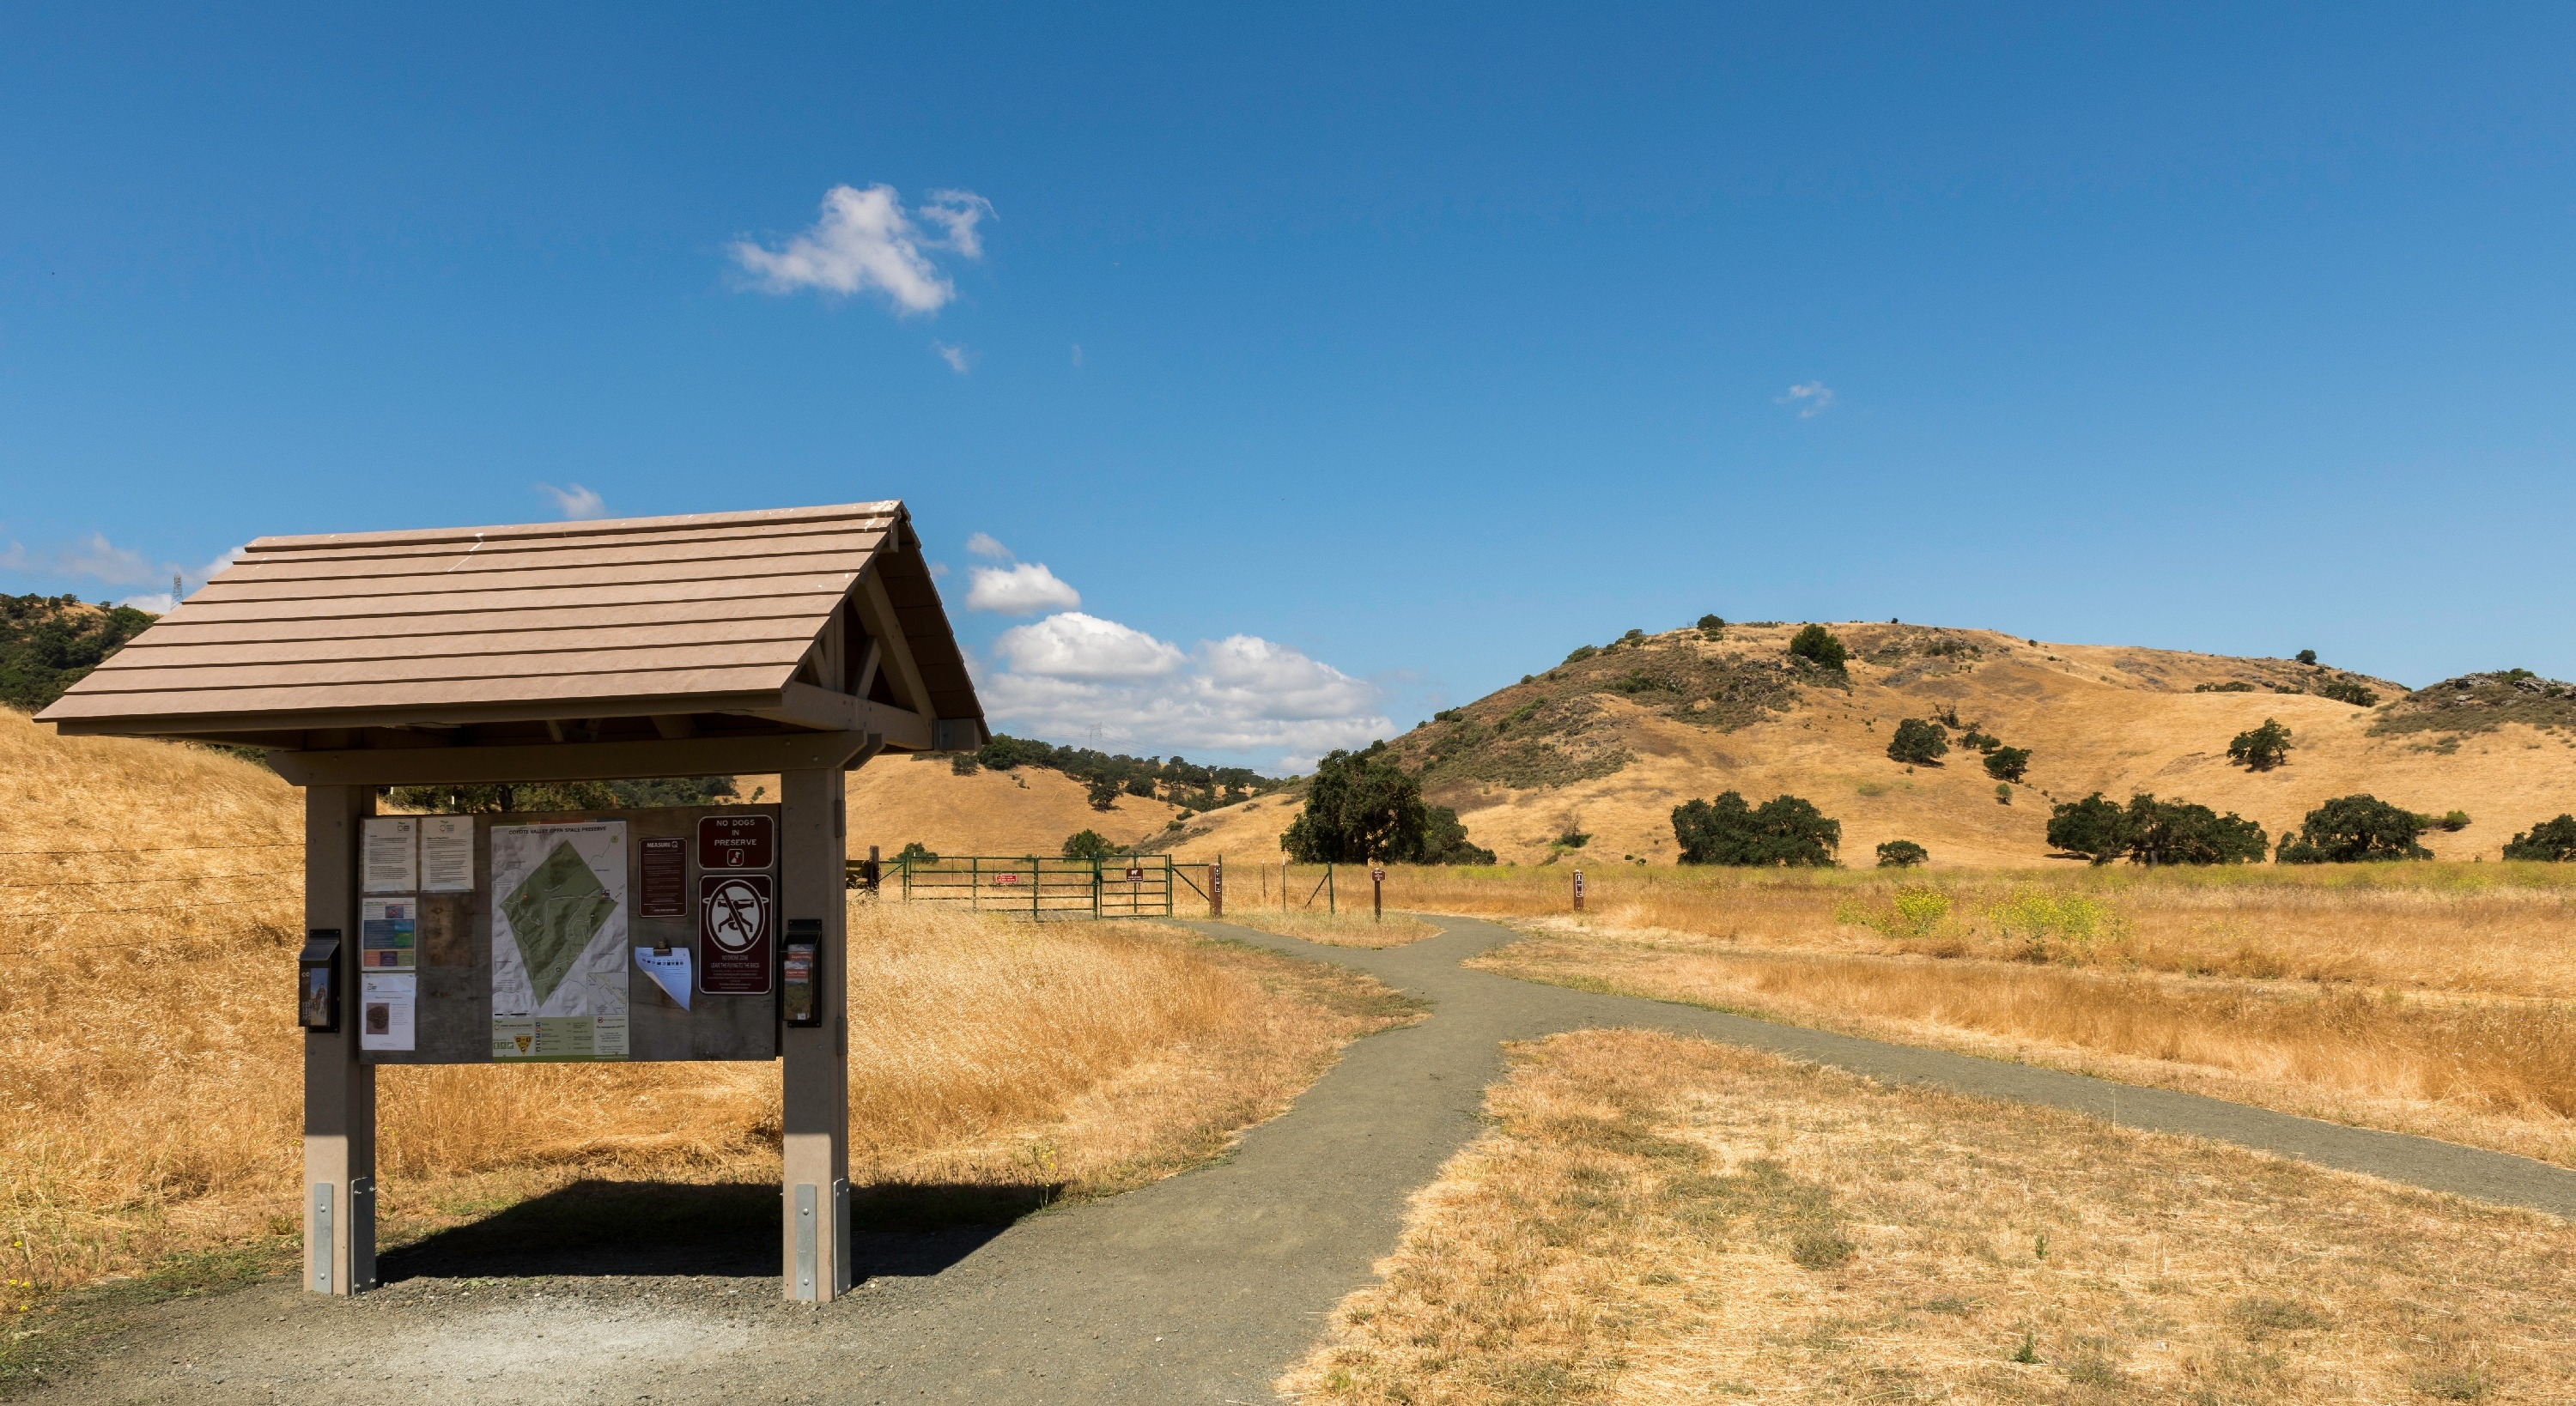 Kiosk at Coyote Valley Open Space Preserve